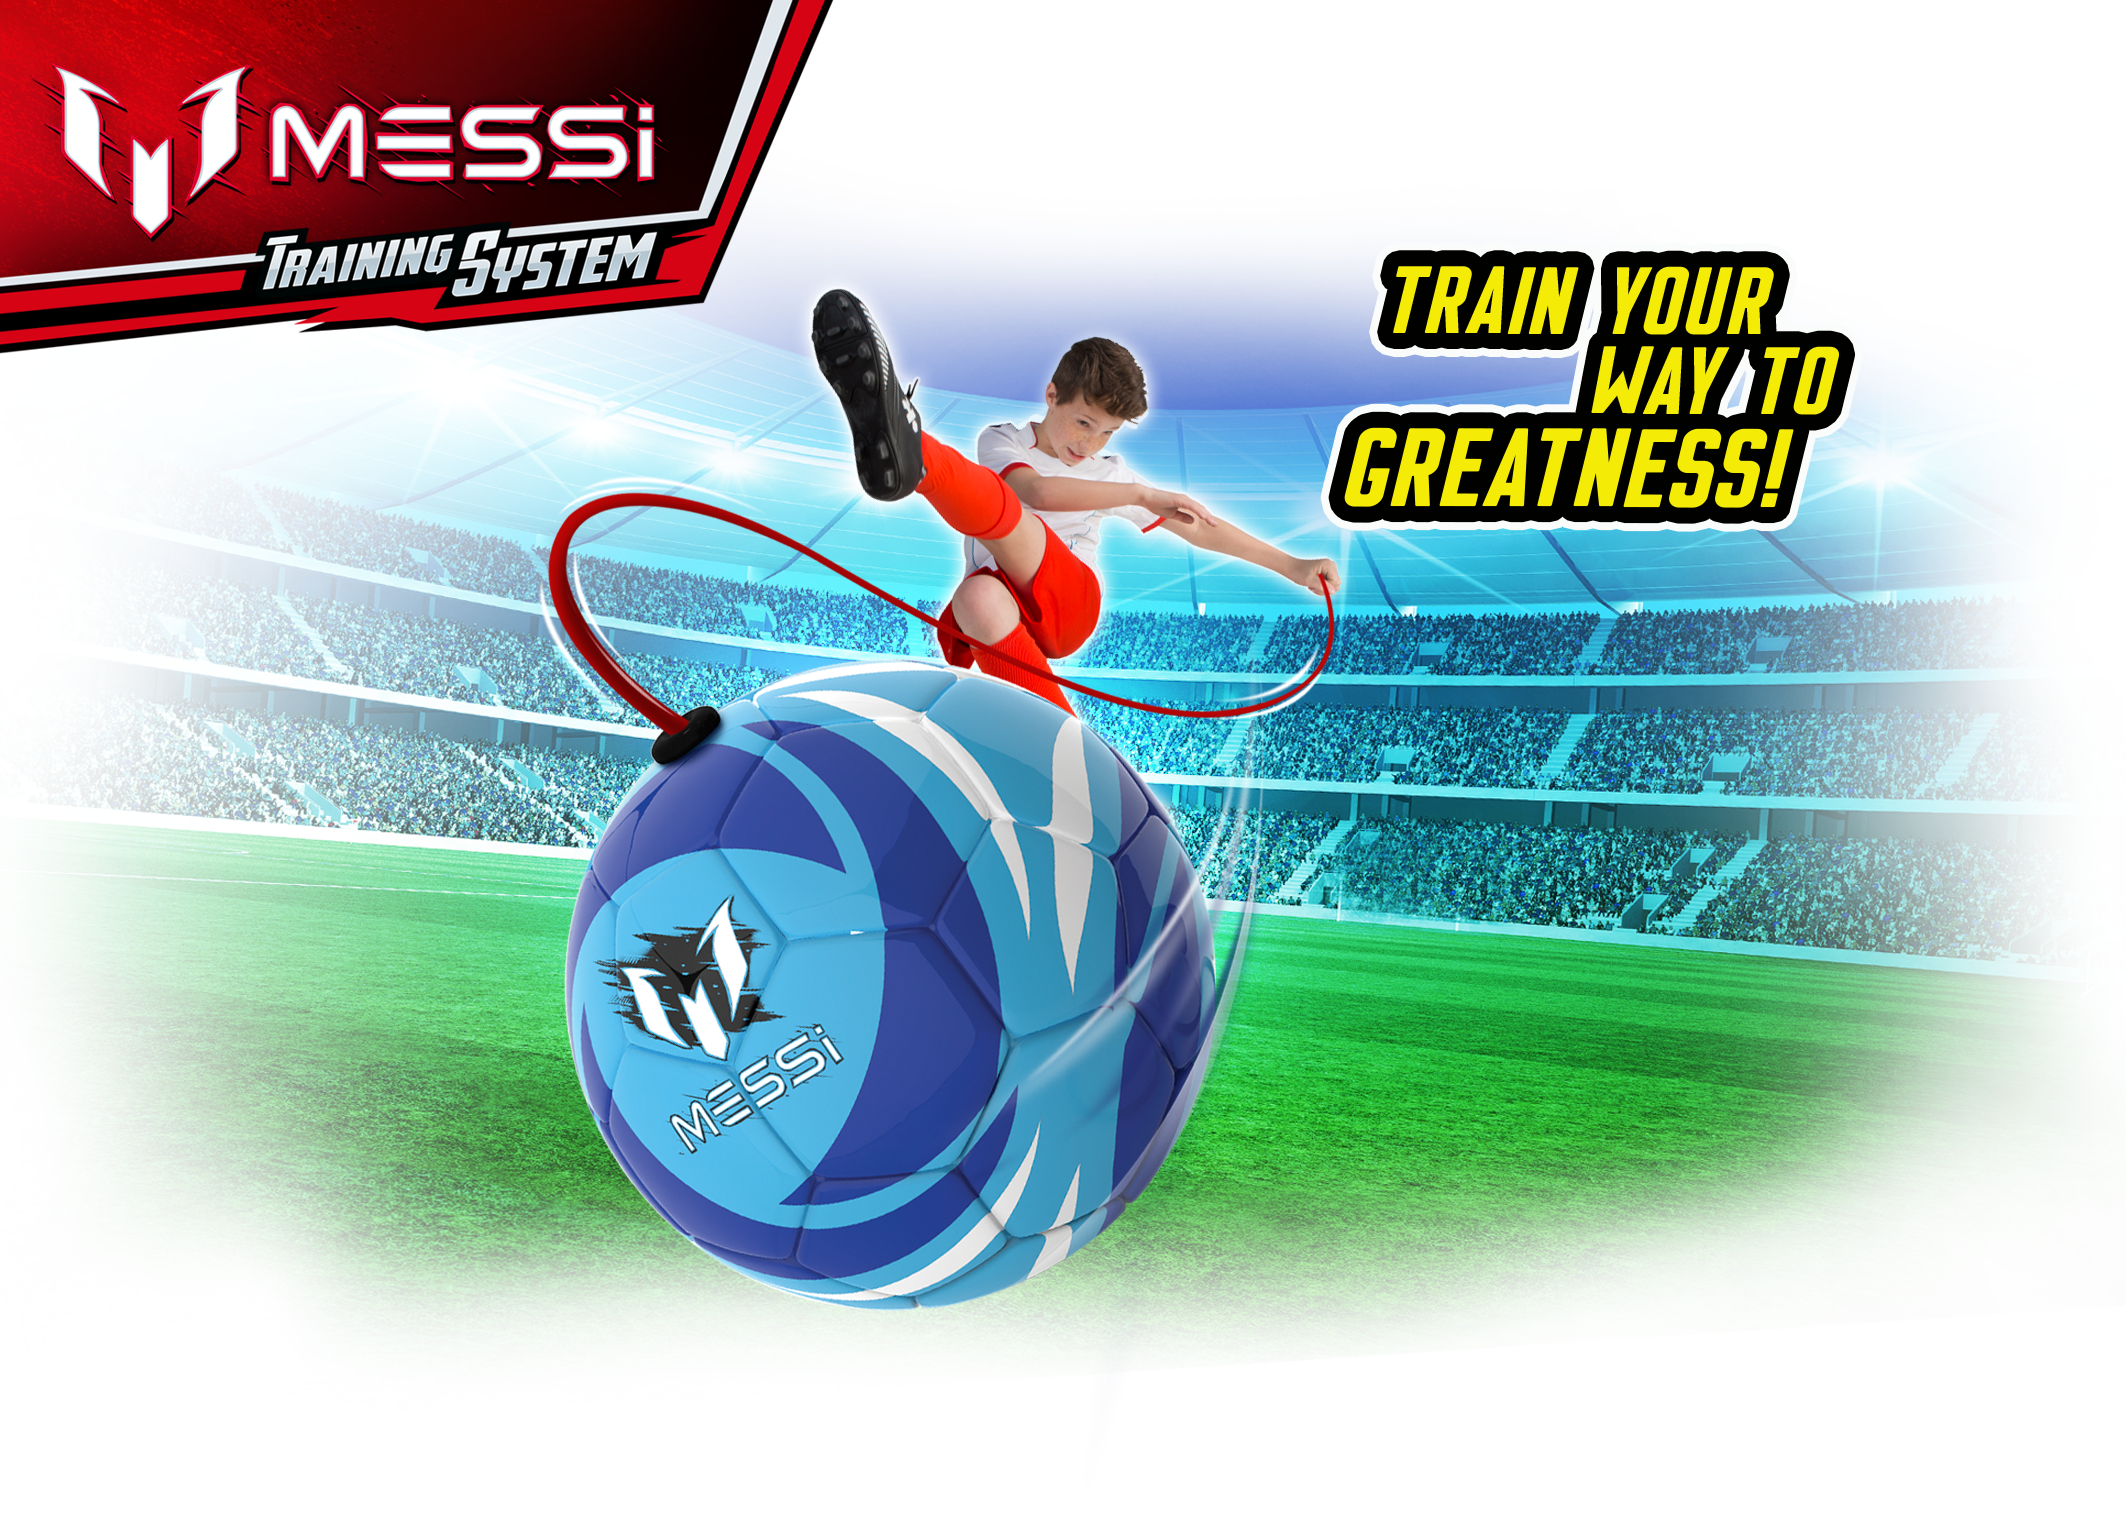 SOFT TOUCH TRAINING BALL - Messi Training System 06958d5d86d77